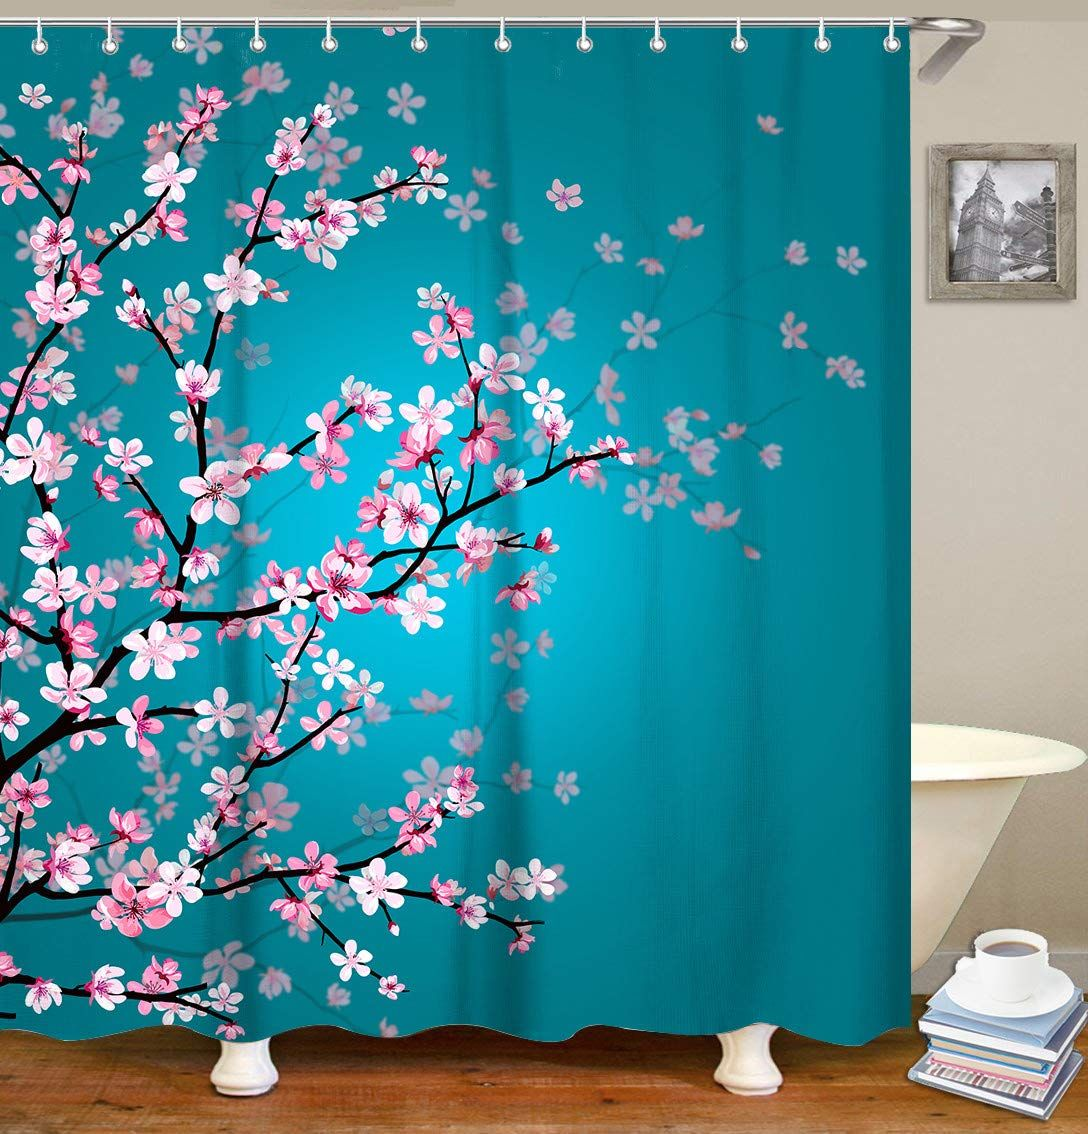 Livilan Floral Bathroom Curtain Set With 12 Hooks Cherry Blossom Shower Curtains Fabric Bath Curt With Images Bathroom Curtain Set Floral Bathroom Turquoise